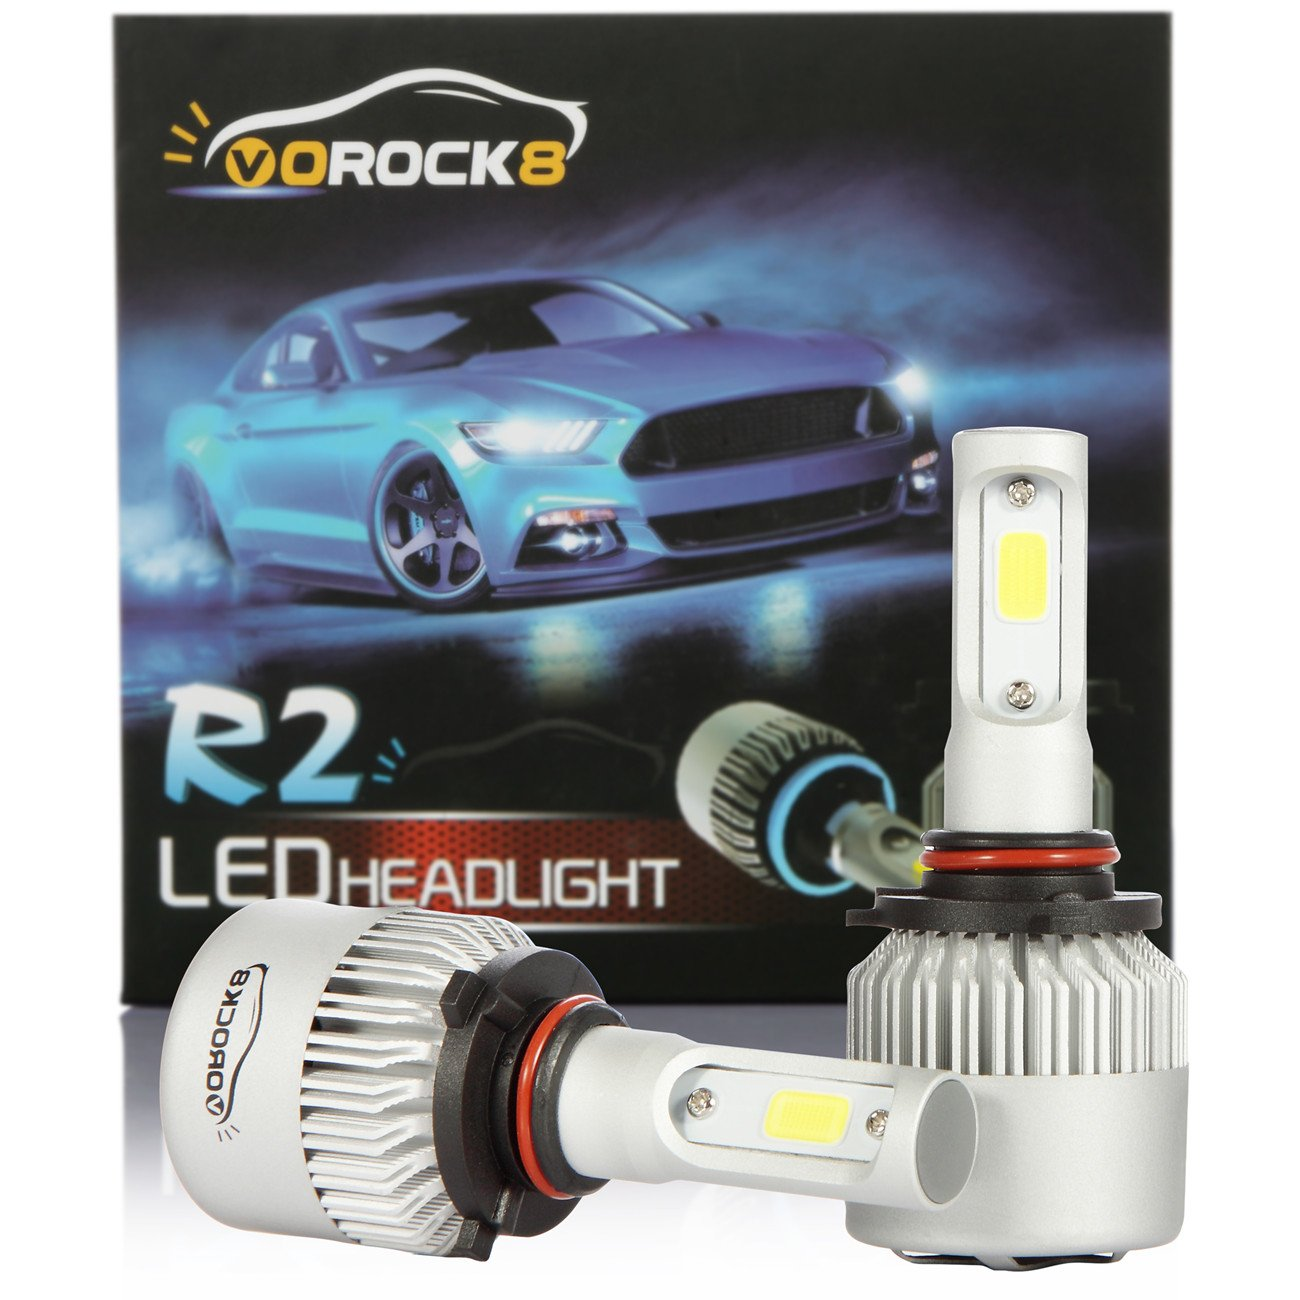 Vorock8 R2 Cob 9005 Hb3 8000lm Led Headlight Conversion 95 Infiniti J30 Fuse Box Kit High Beam Headlamp Hi Bright Headlights Hid Or Halogen Head Light Replacement